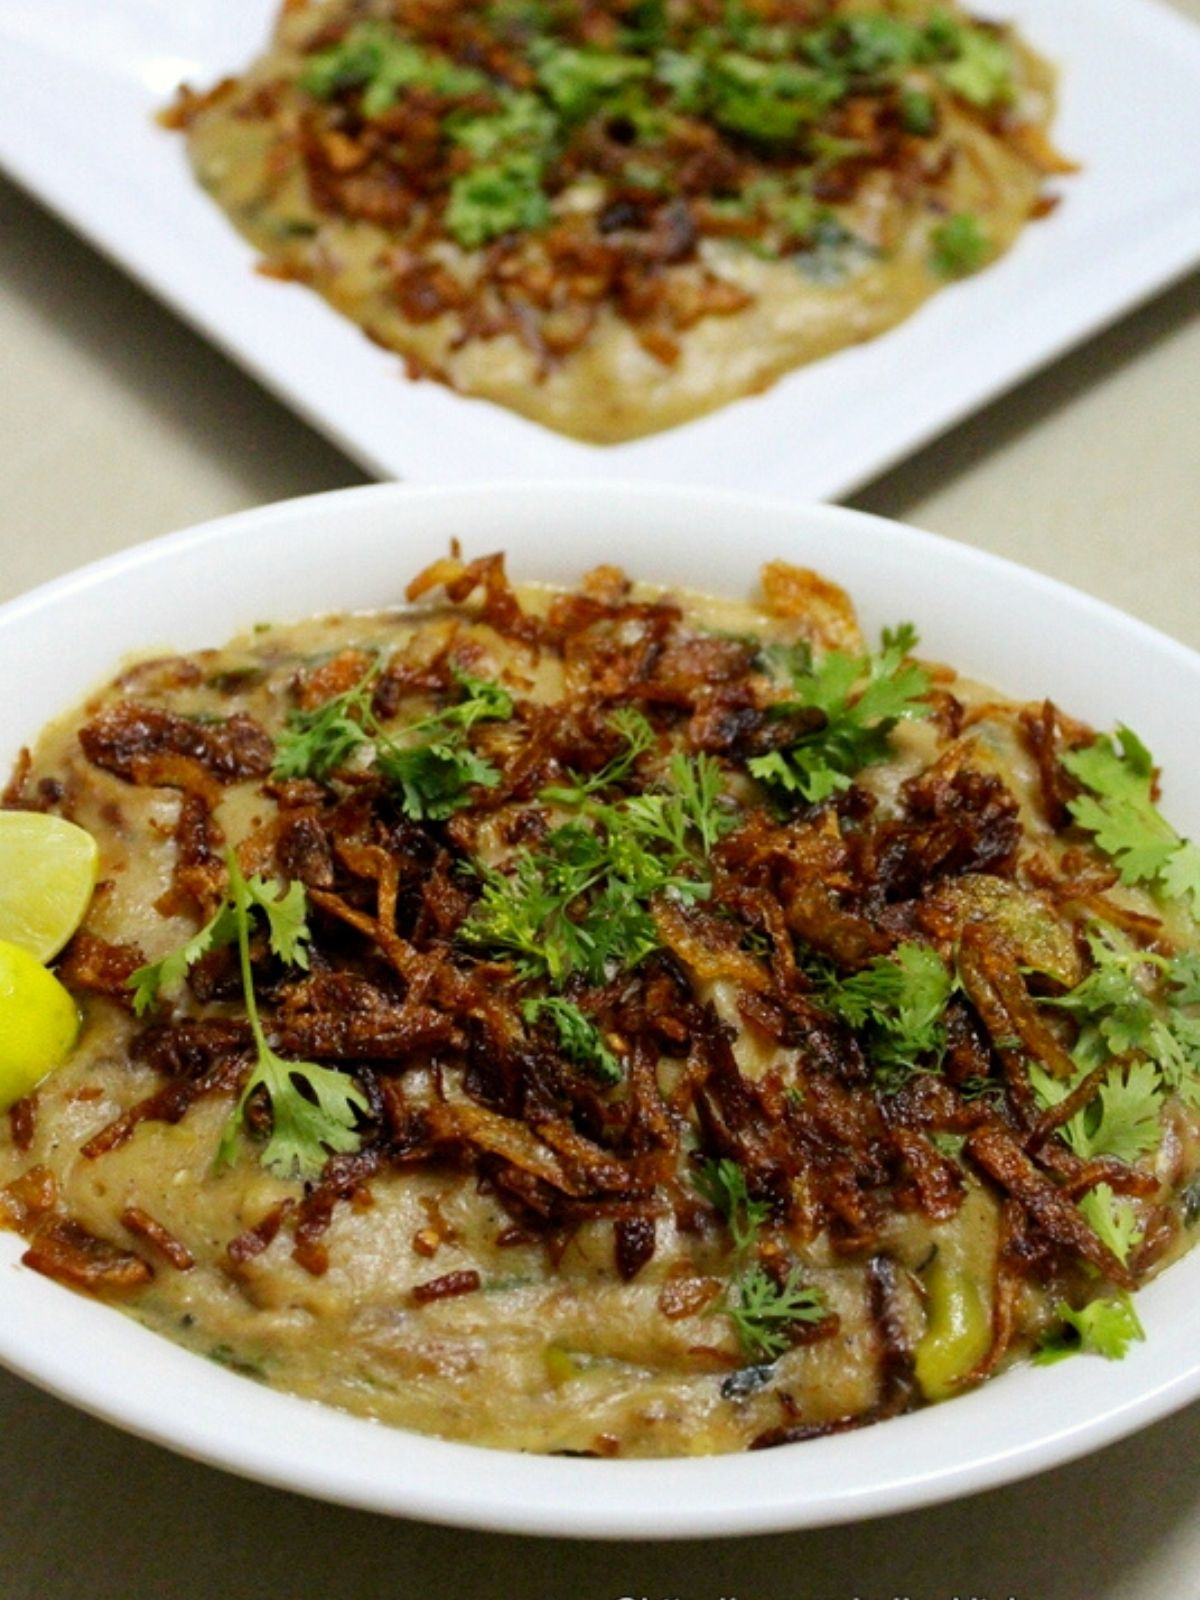 haleem recipe served in a bowl with fried onions as topping